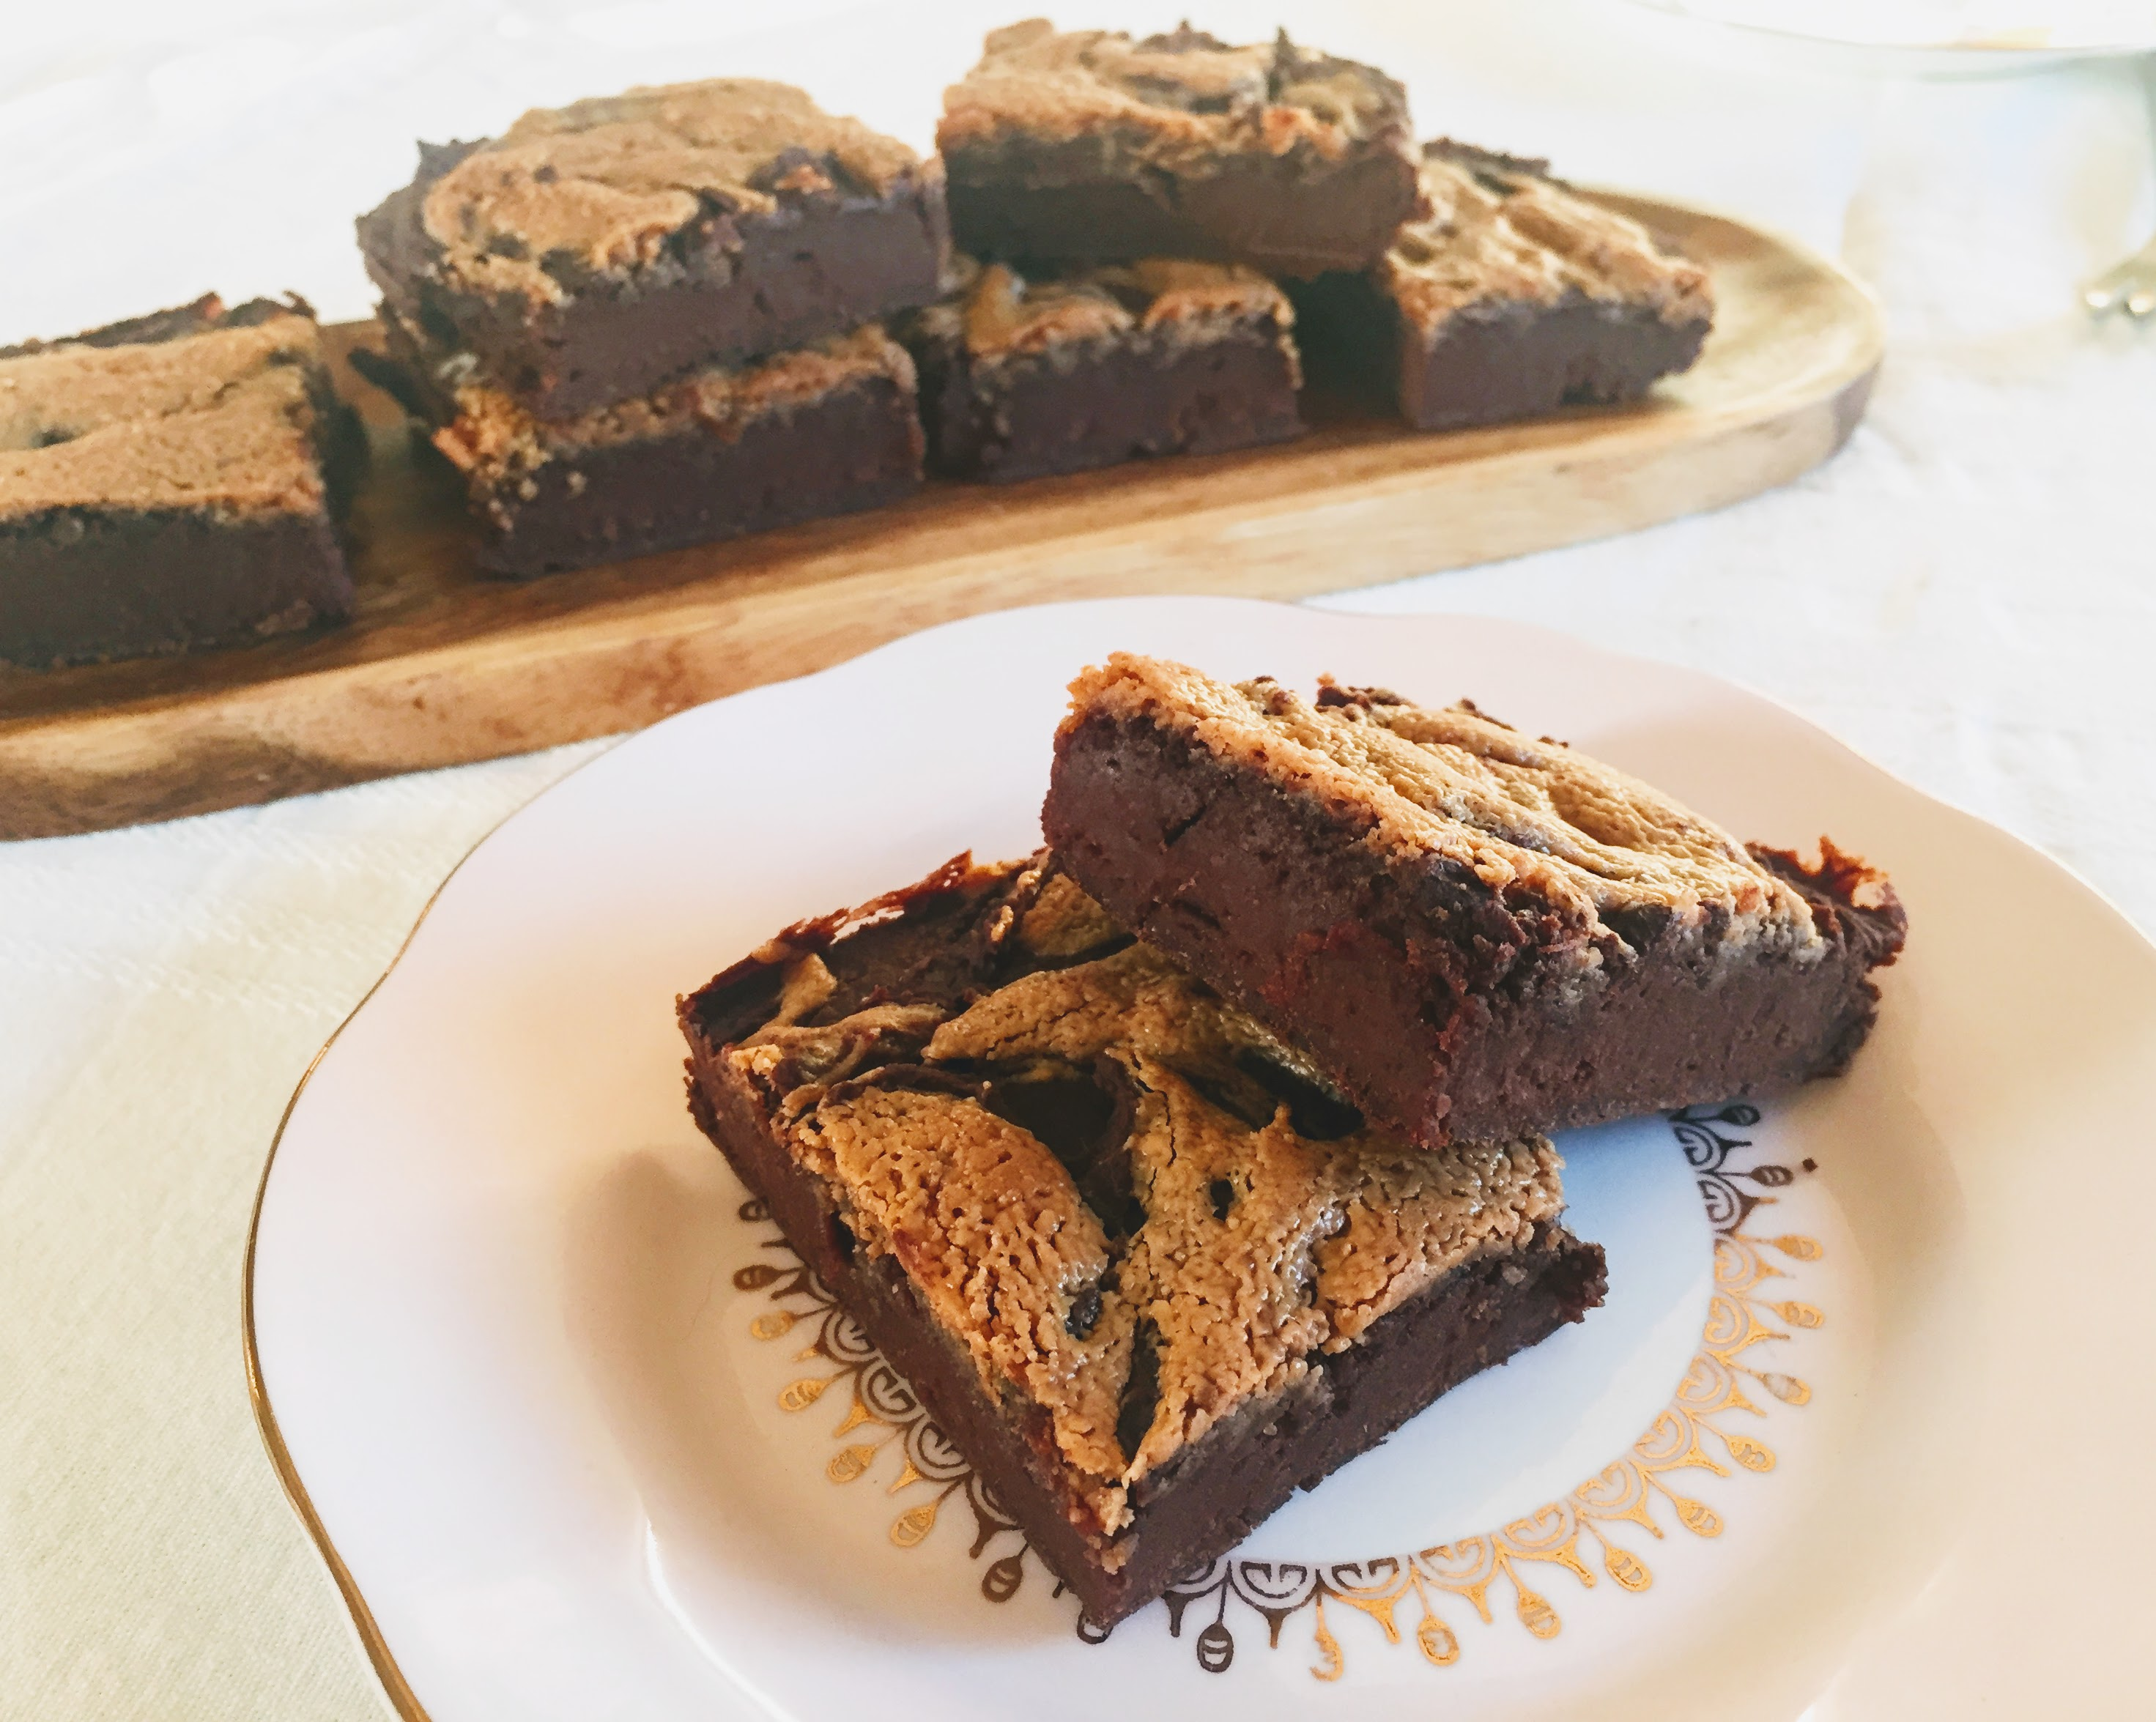 Two dark and fudgy brownies stacked on a pink place. Each has golden-coloured swirls of peanut butter on top, and the remaining brownies are on a platter in the background.